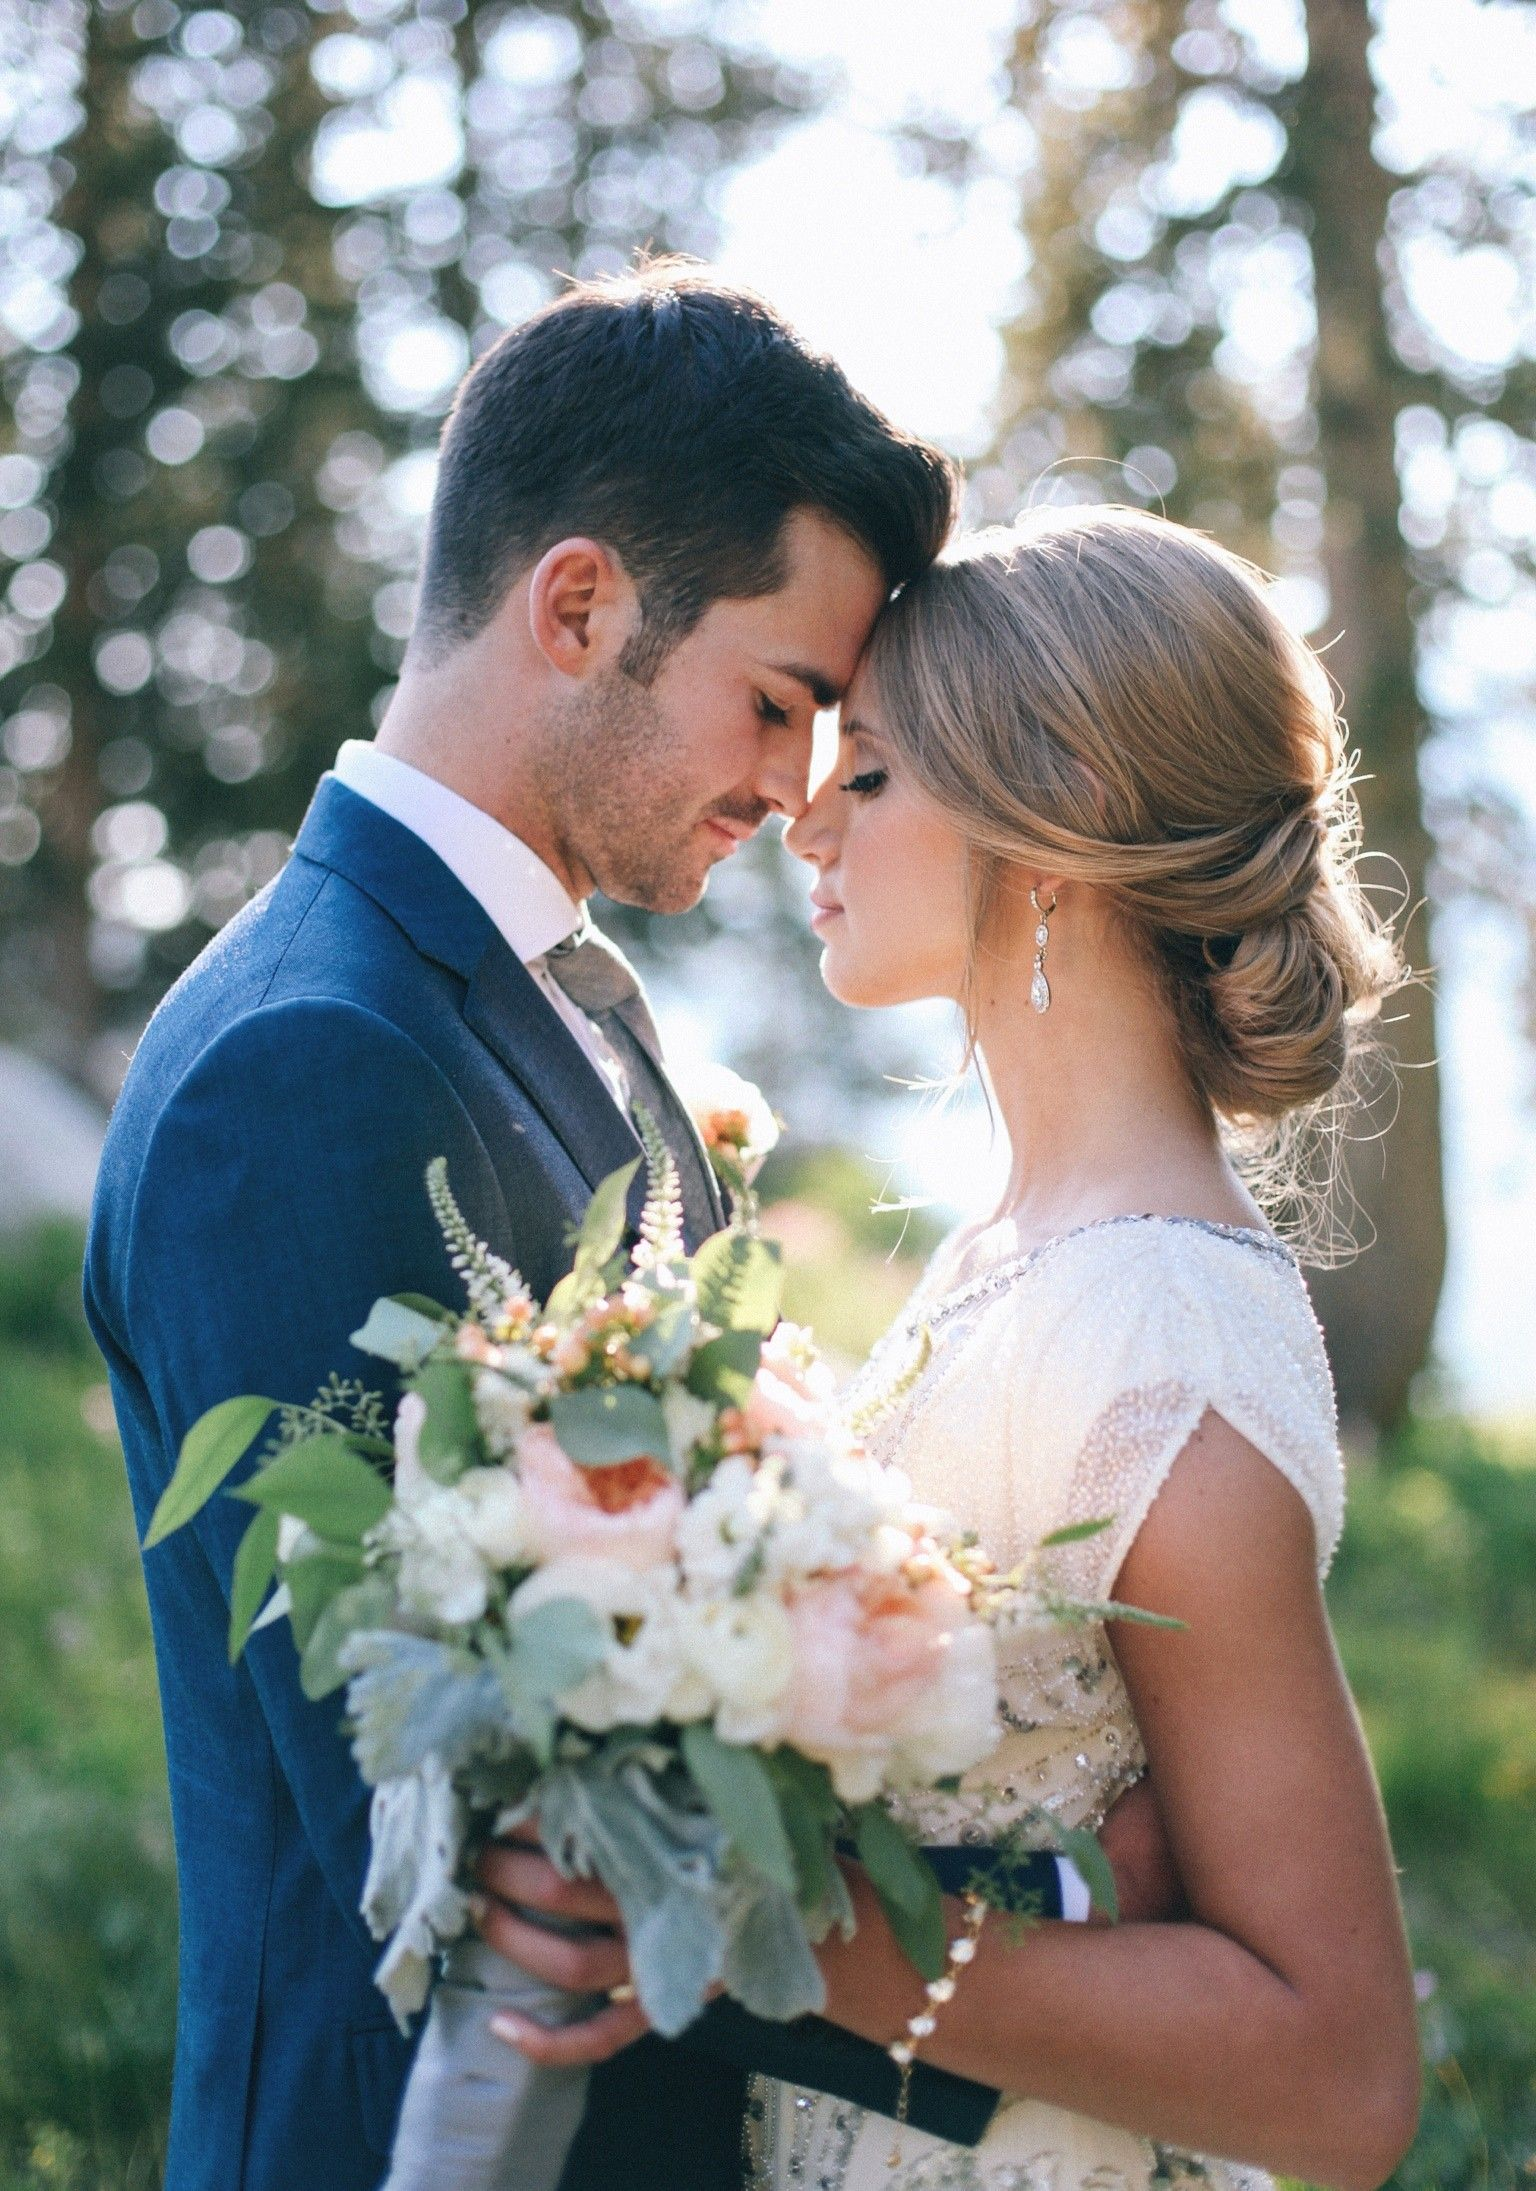 Nice 100 Inspirations Outdoor Wedding Photography Will You Look Gorgeous Wedding Picture Poses Outdoor Wedding Photography Bride Photography